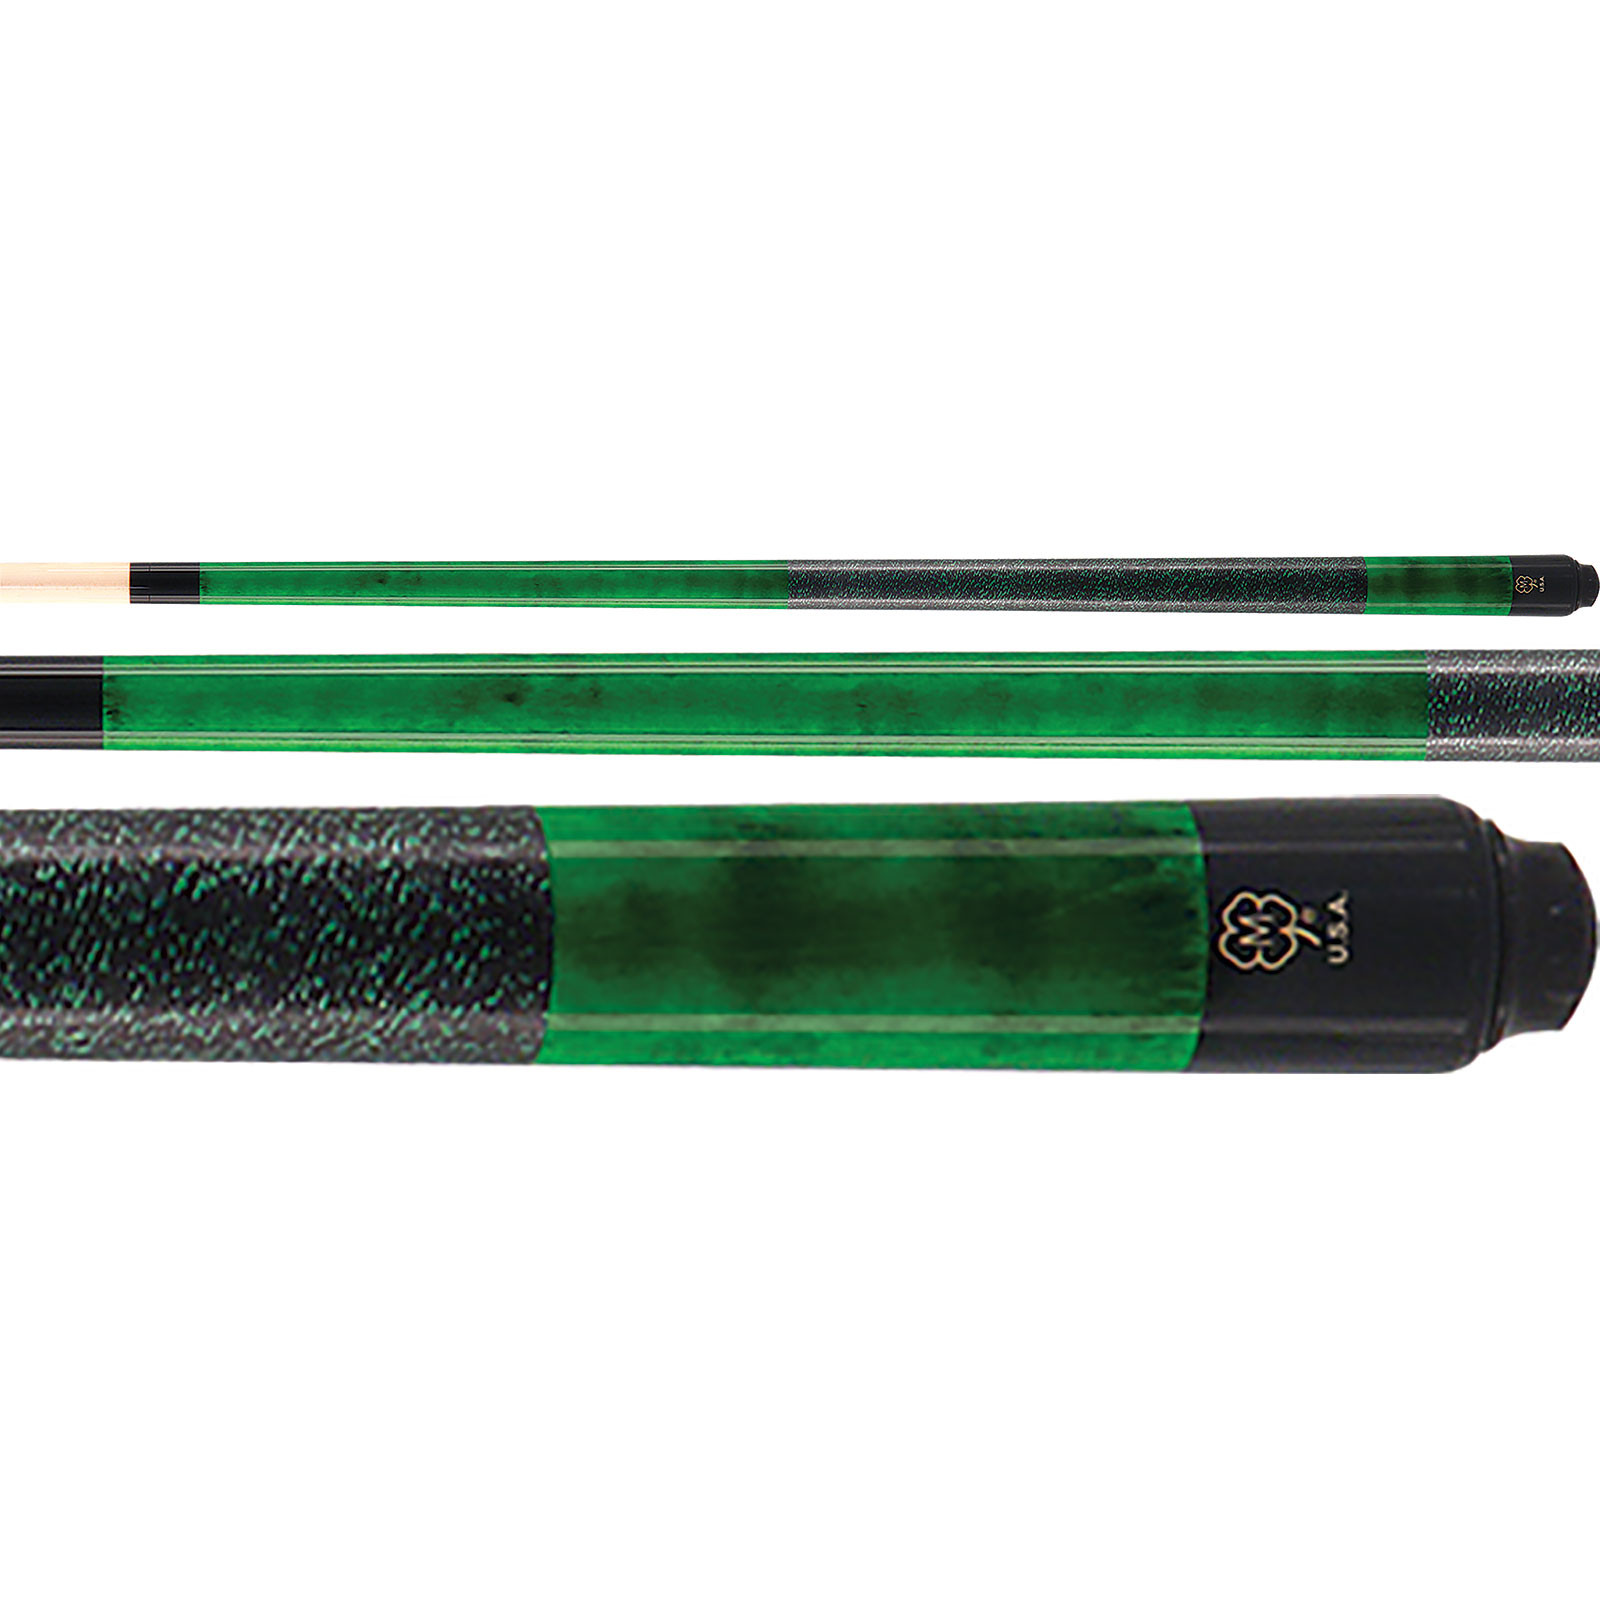 McDermott GS05 GS-Series Green Pool Cue